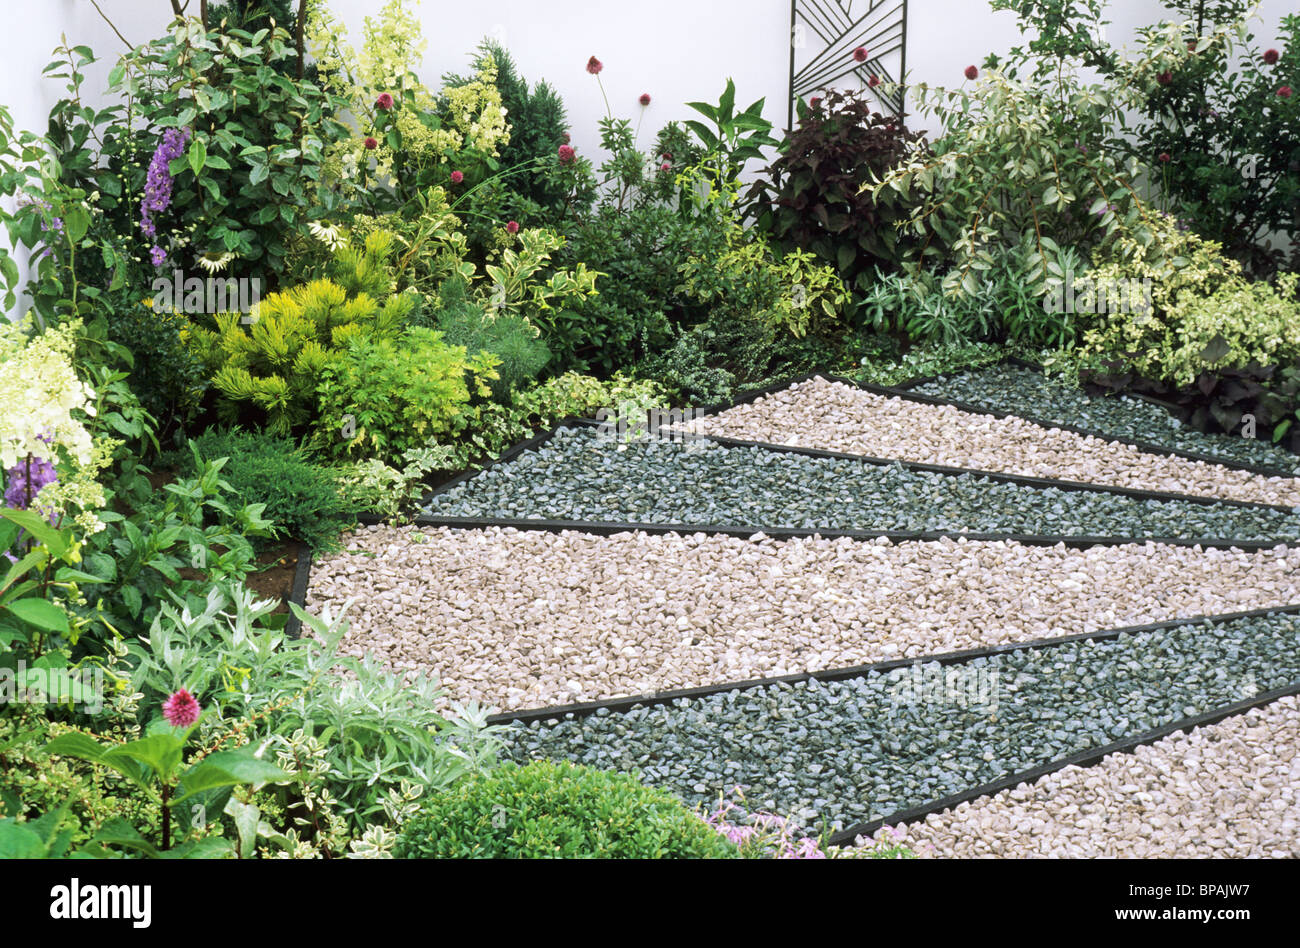 Pebble coloured gravel garden sandringham flower show for Garden floor design